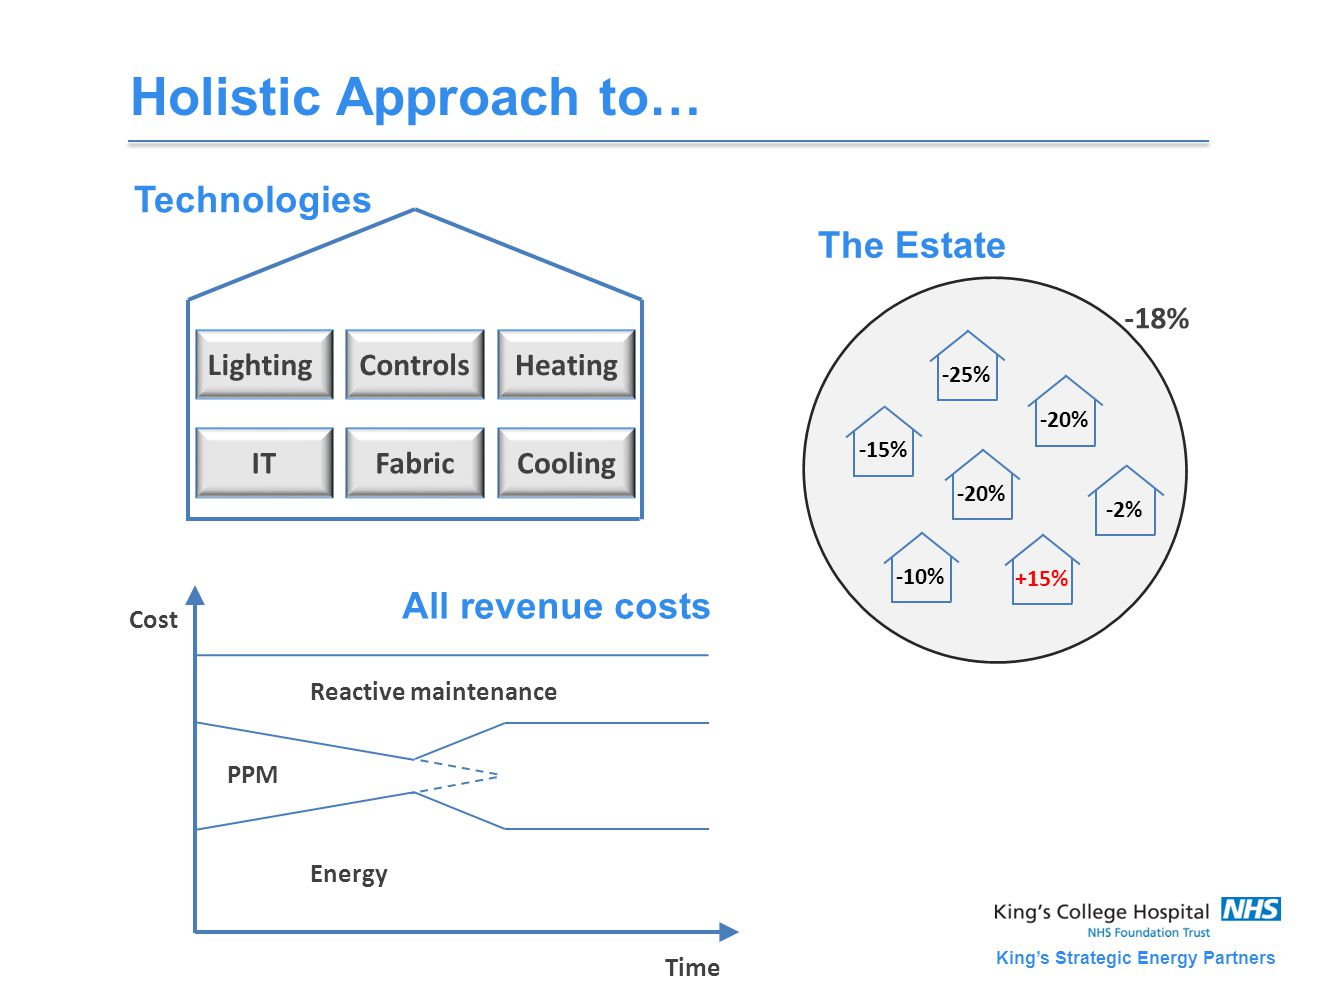 King's Strategic Energy Partners Holistic Approach to… Cost Time PPM Reactive maintenance Energy All revenue costs LightingControlsHeating ITFabricCooling Technologies The Estate -15% -25% -20% -2% +15% -10% -20% -18%